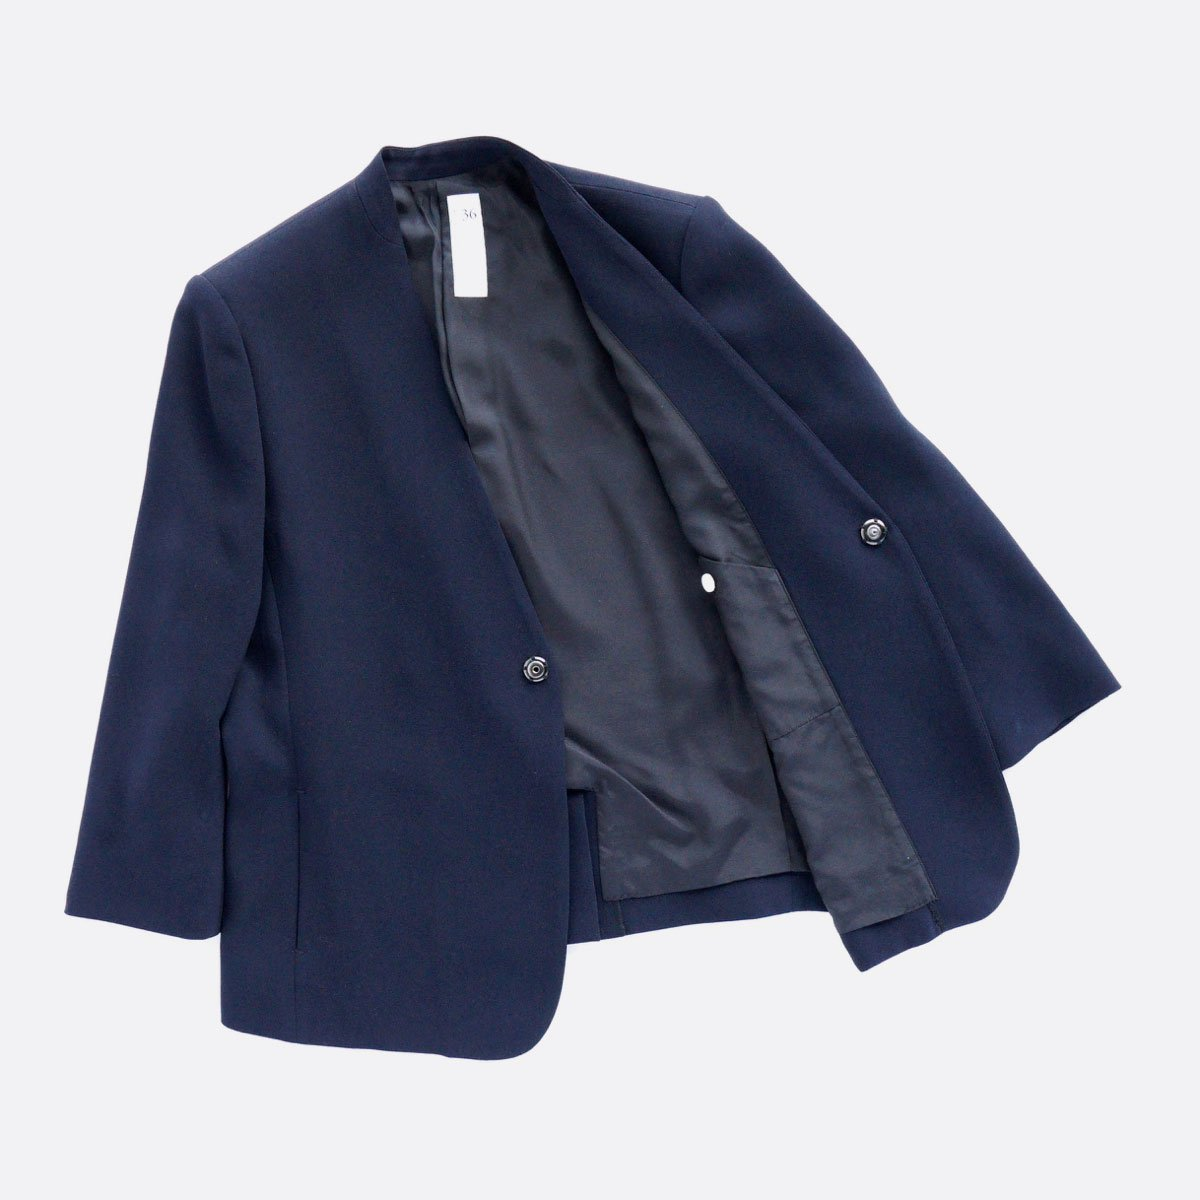 NO CONTROL AIR ACETATE & POLYESTER DOUBLE CROTH NO COLOR JACKET (NAVY)4